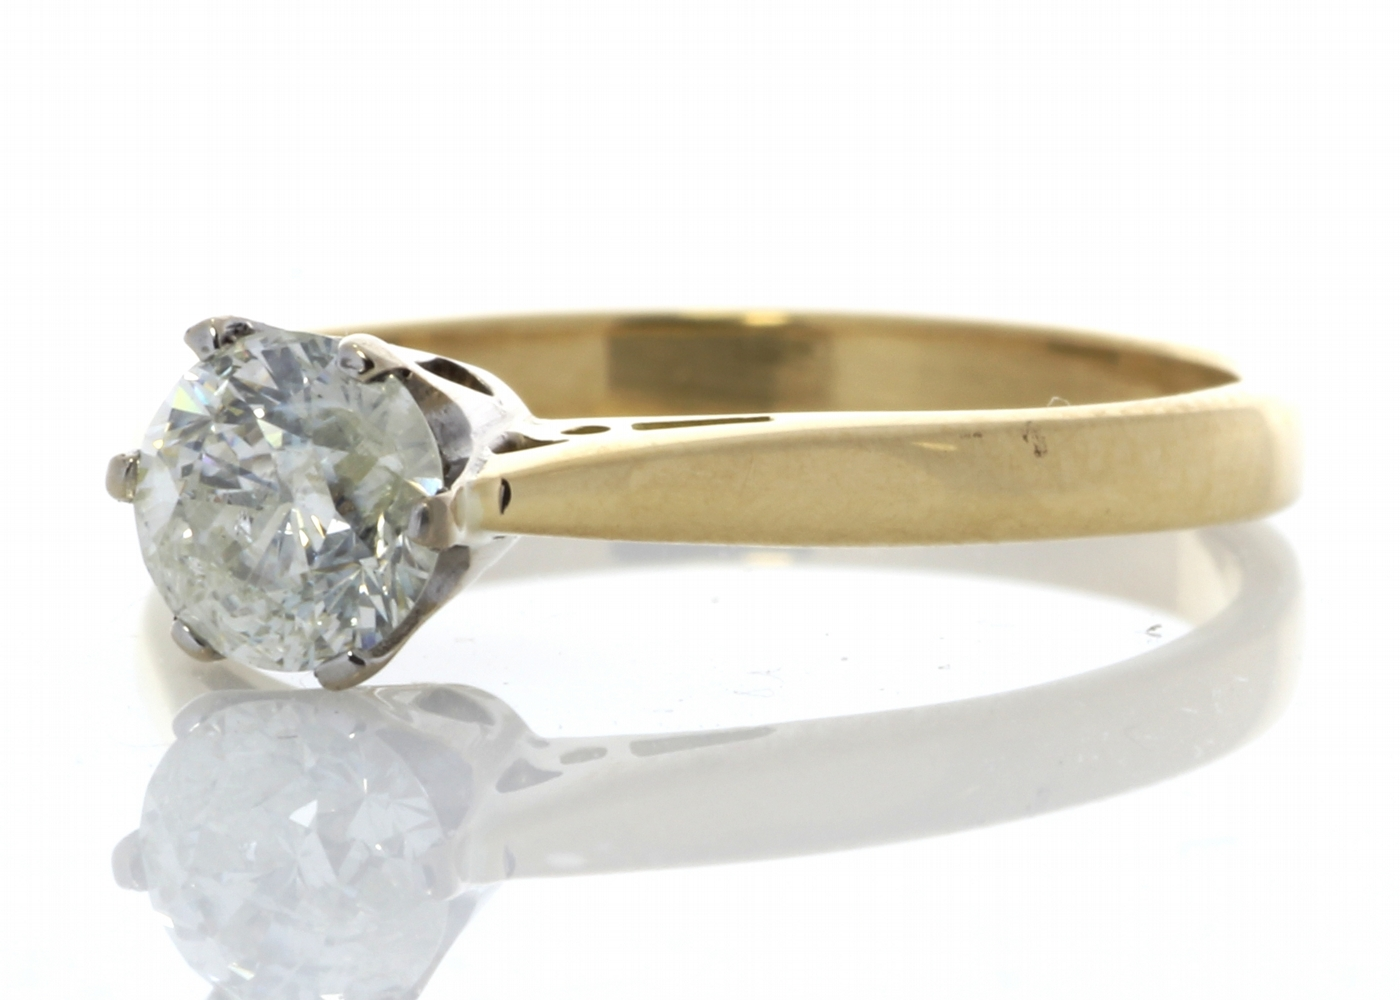 18ct Yellow Gold Diamond Engagement Ring 0.61 Carats - Image 2 of 6